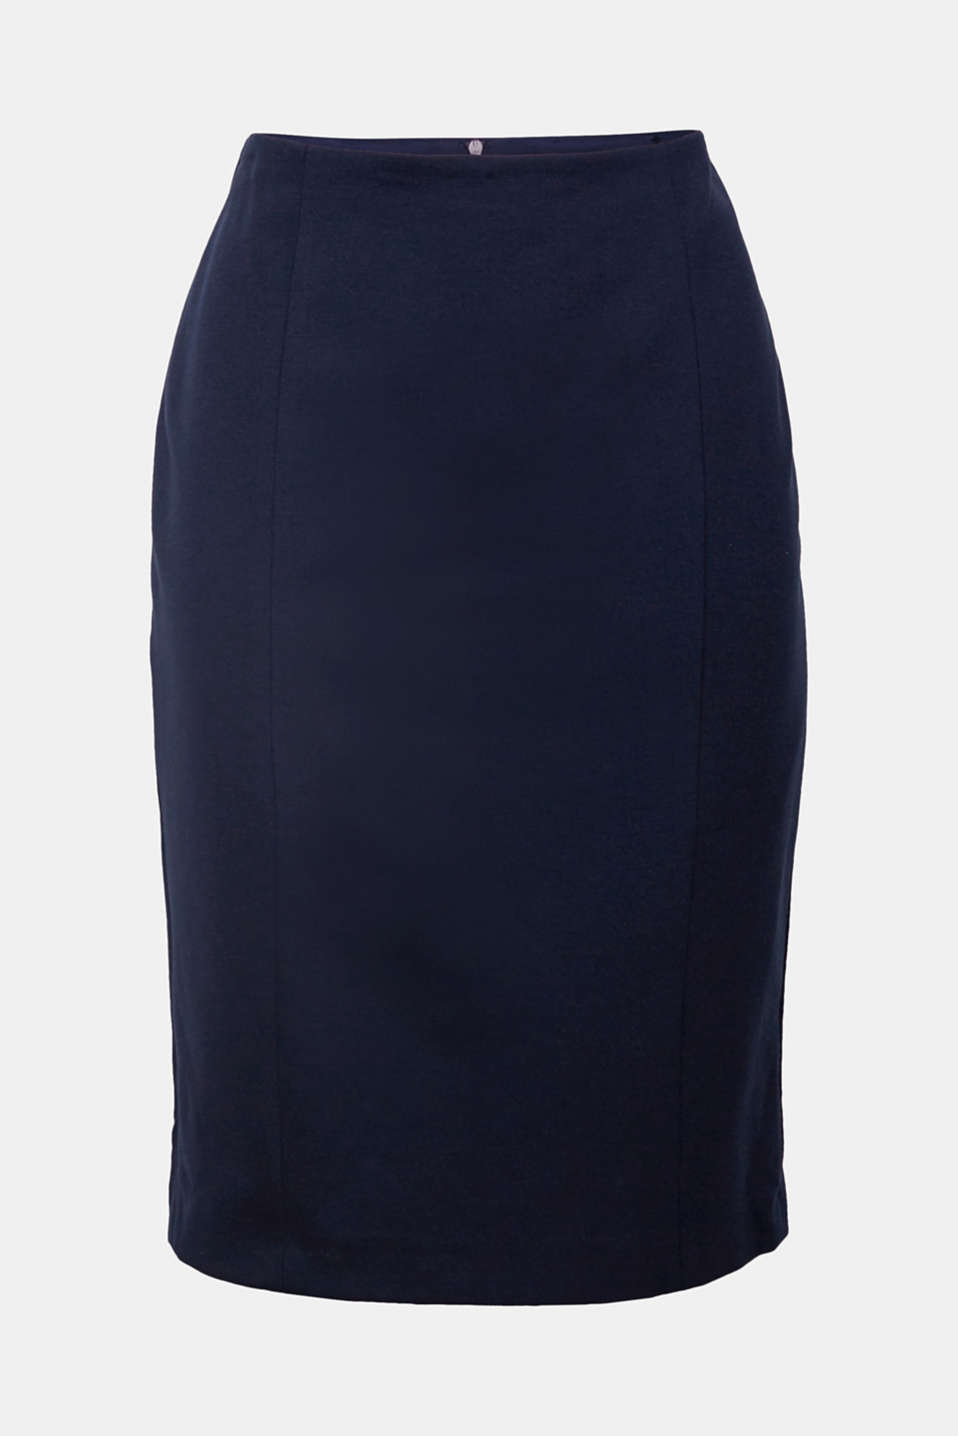 Simple, sensational, shaping: this pencil skirt in stretch jersey settles sensuously around the body and is an absolute classic!